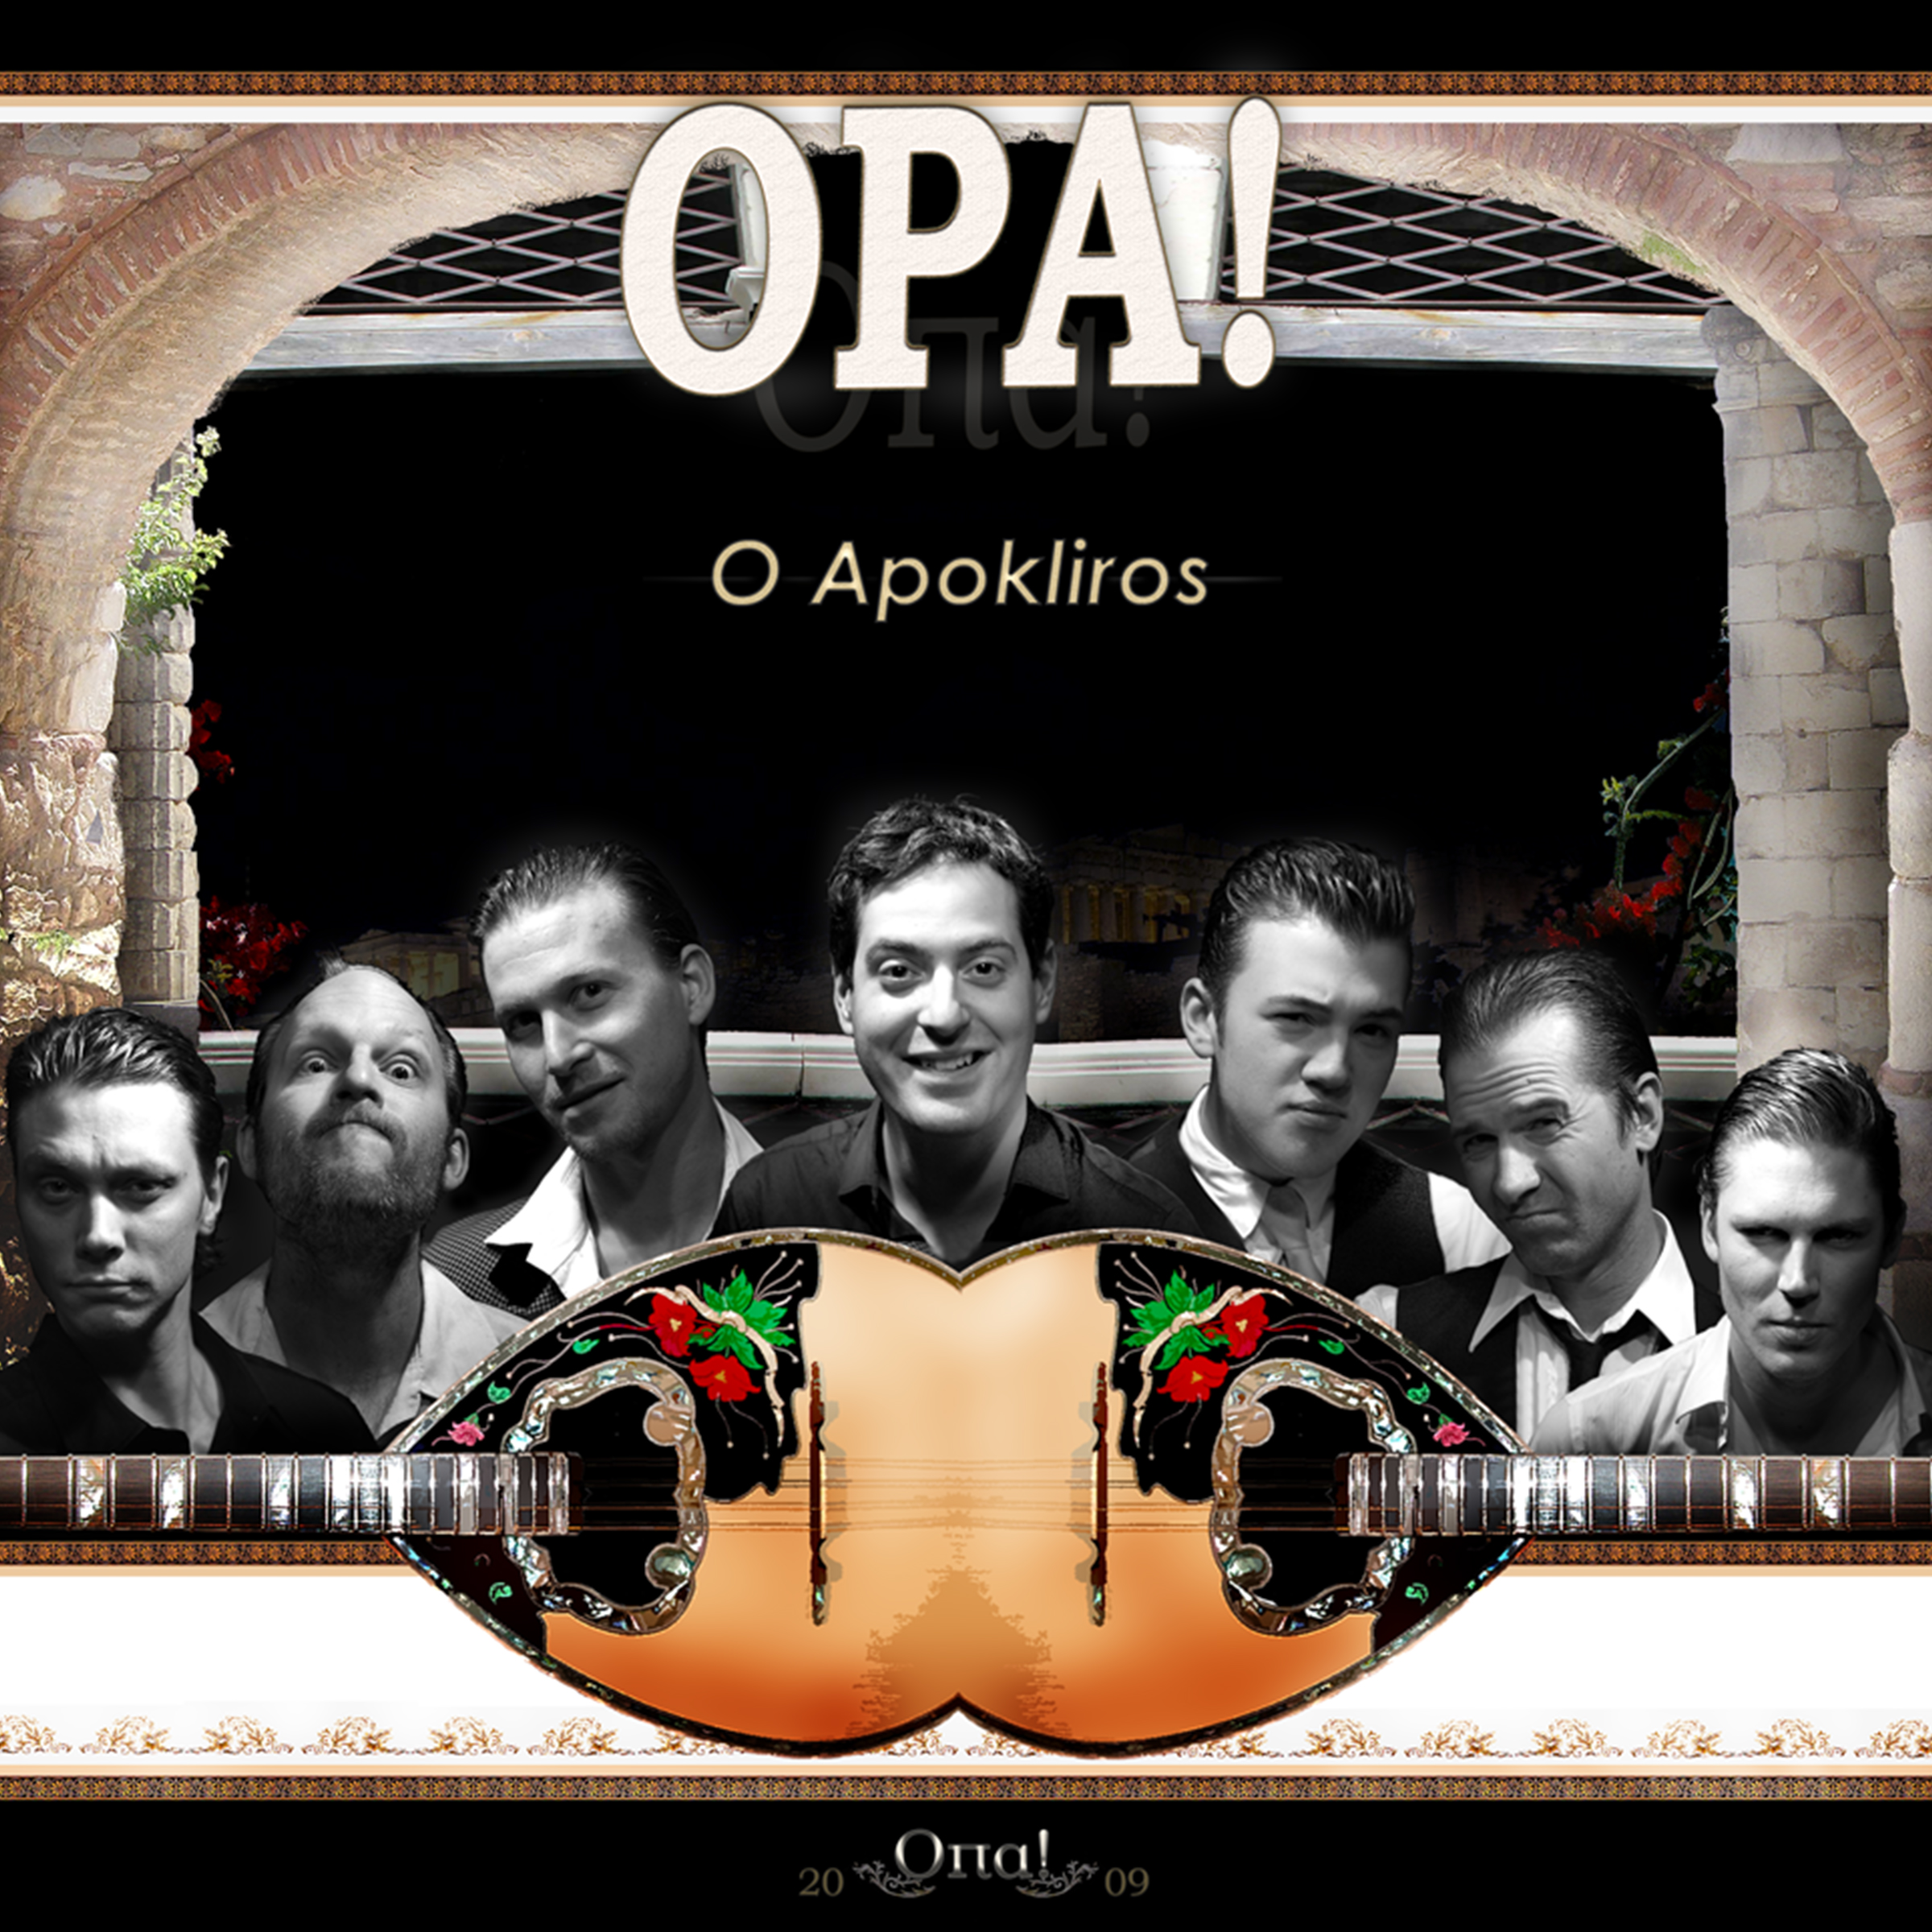 OPA – O Apokliros.DOWNLOAD: Visit iTunes Music Store or or your favourite download store. OPA - O Apokliros monophon MPHEP001, 2009.